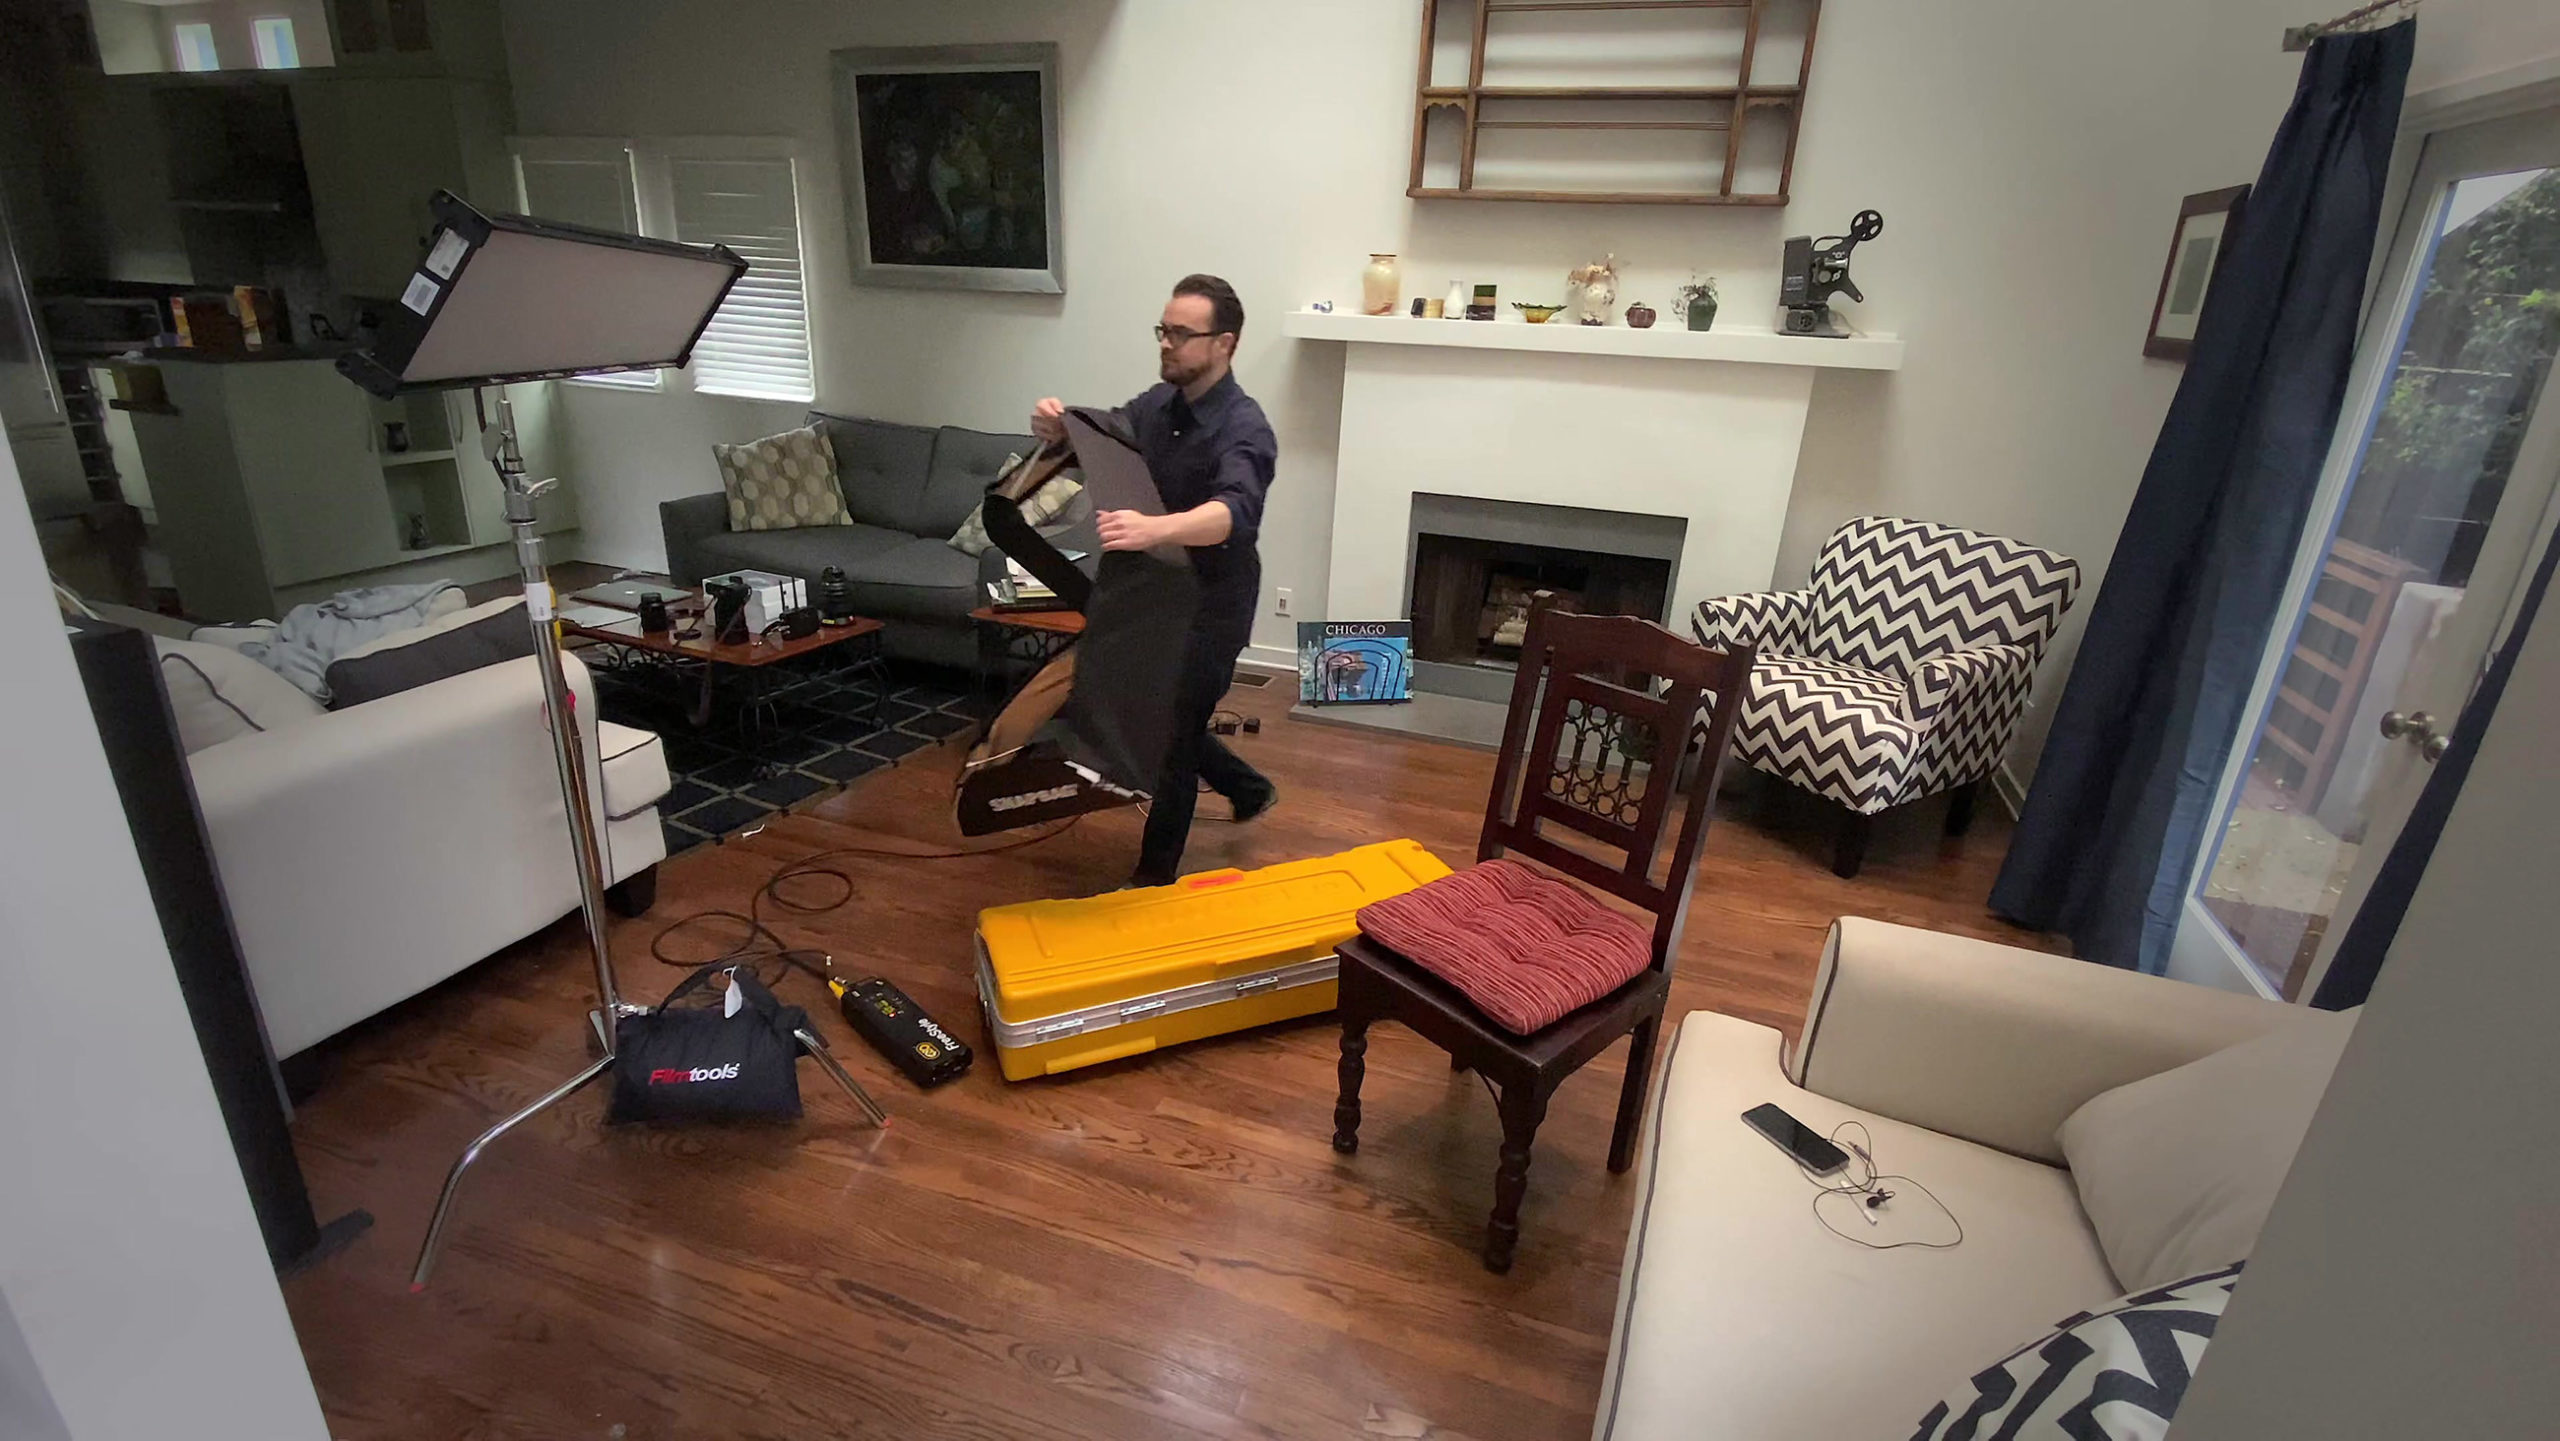 Michael Cioni sets up lights for the Workflow From Home set.